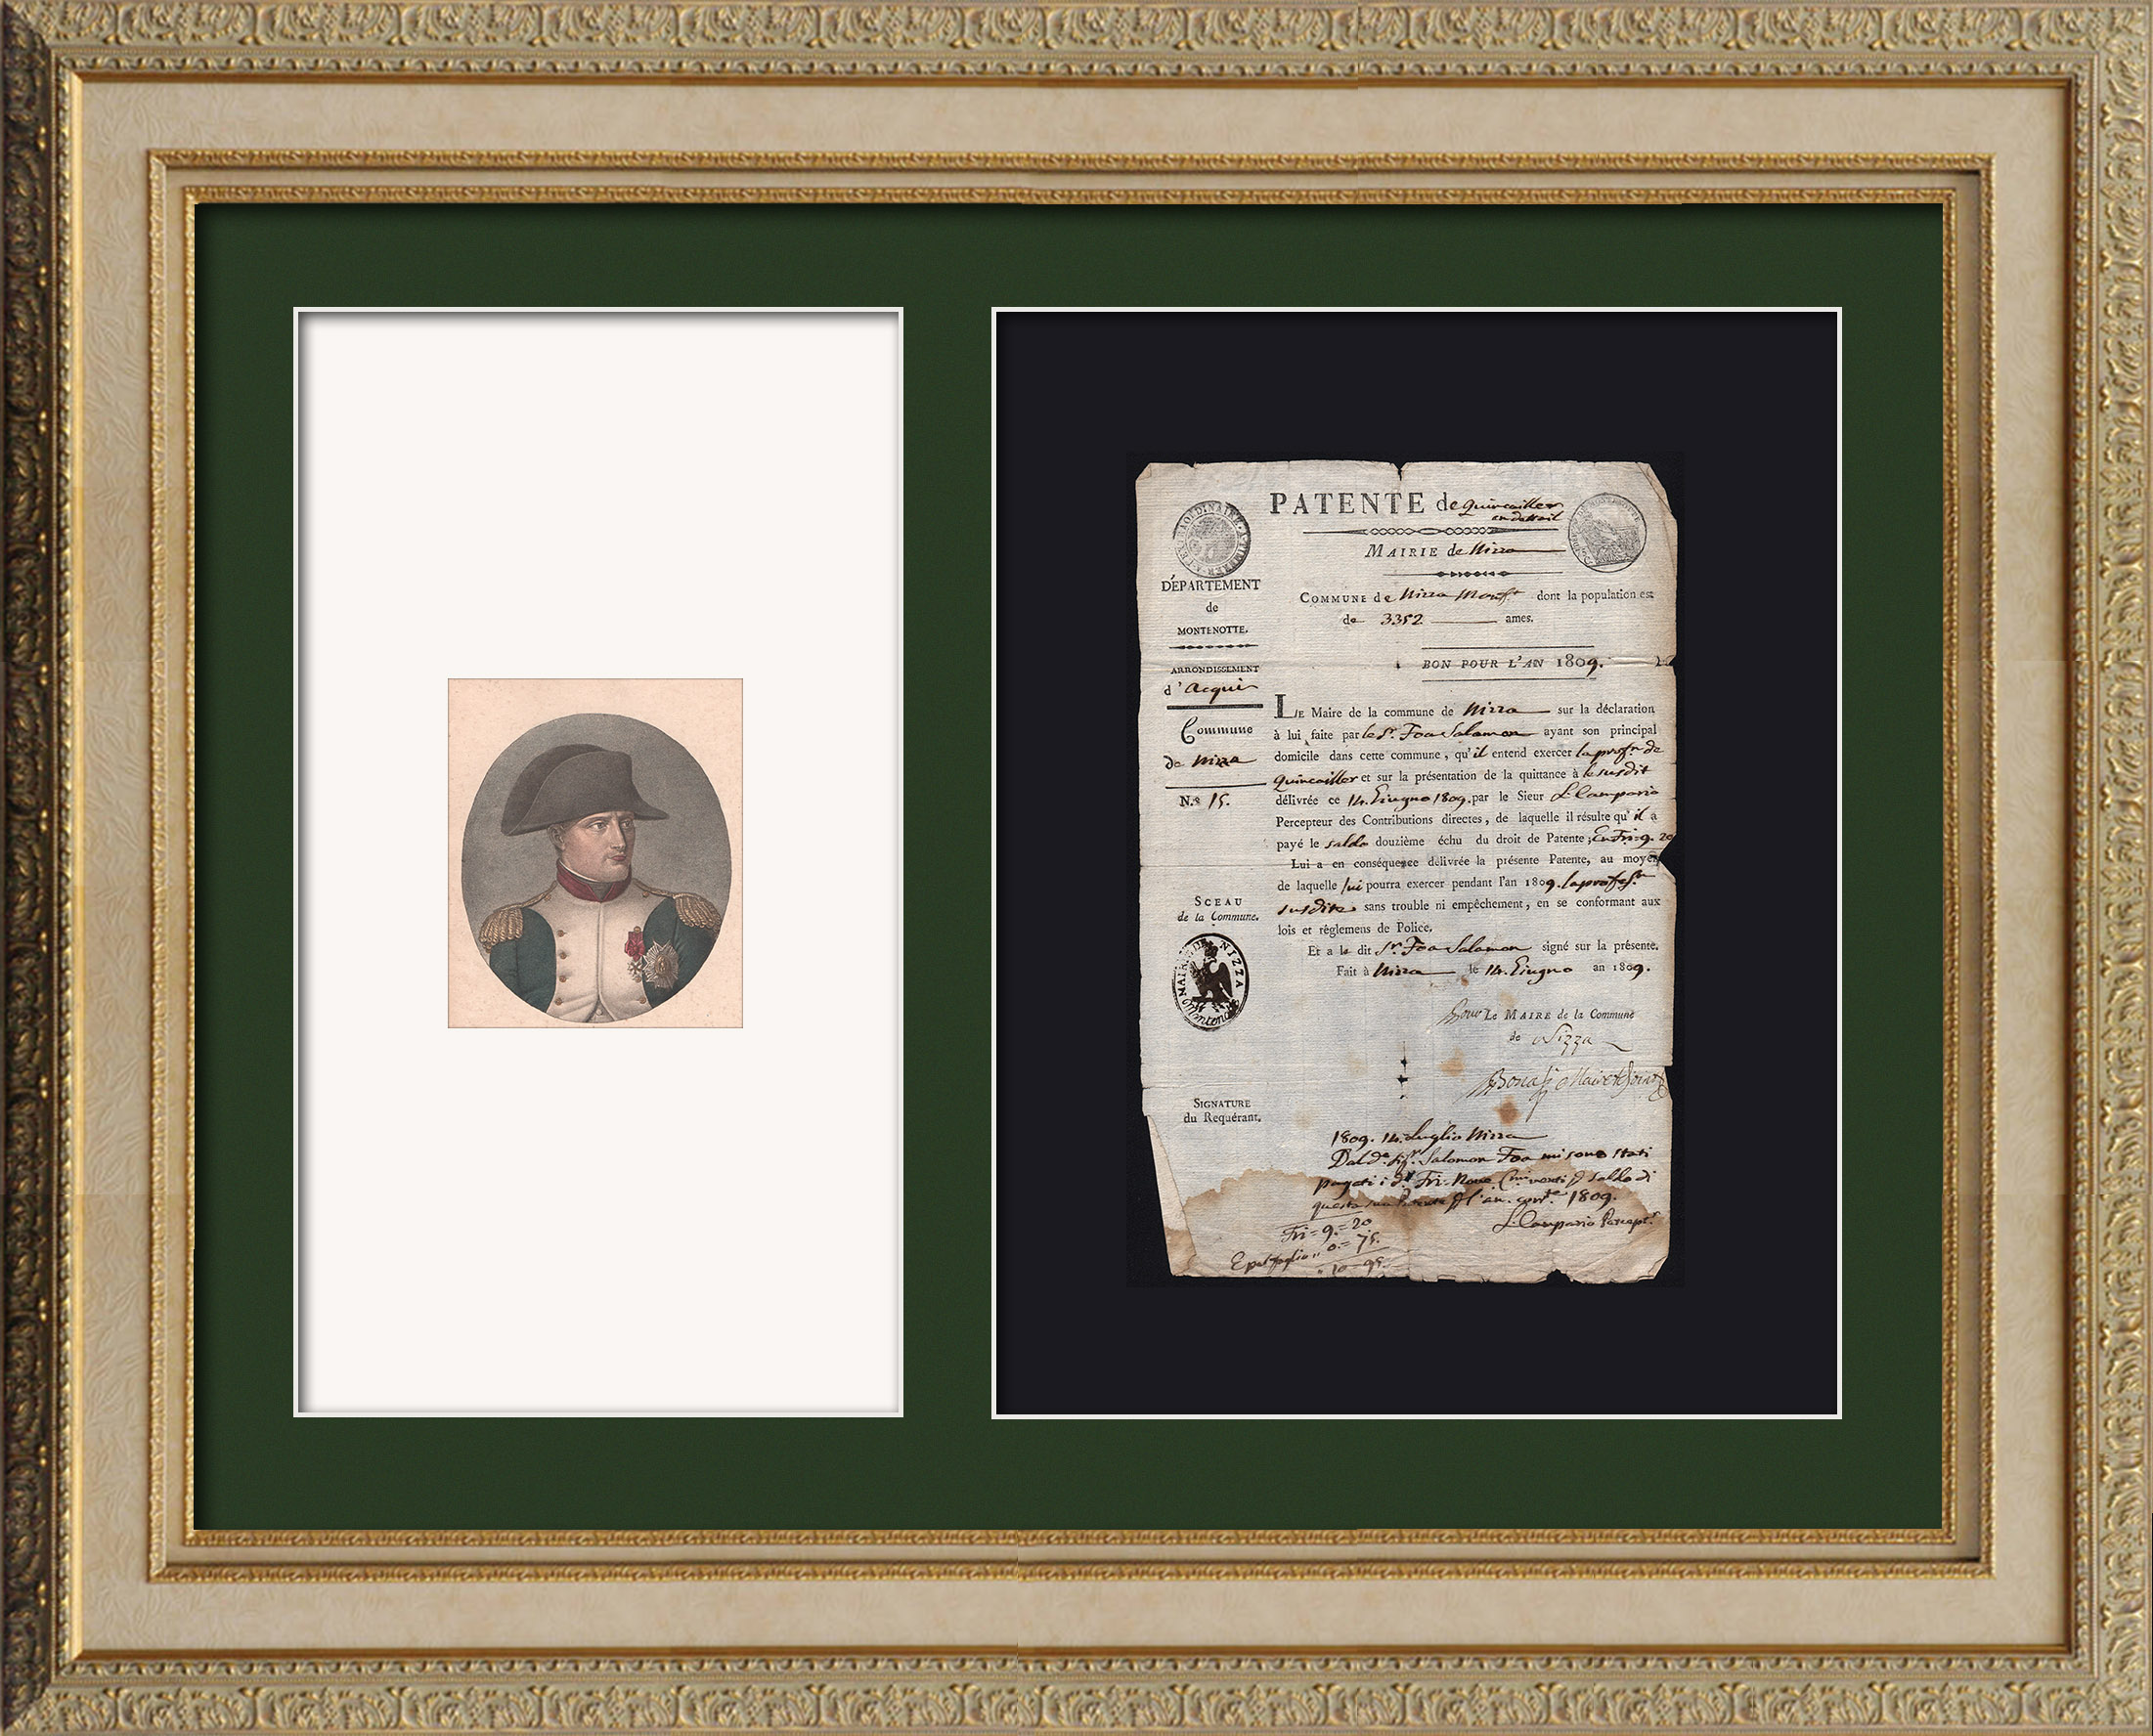 Historical Document - First French Empire - 1809 - Nizza - Montenotte - Italy - License of Merchant | Historical original document dated 1809, stamp with imperial eagle and Portrait of Napoleon Bonaparte